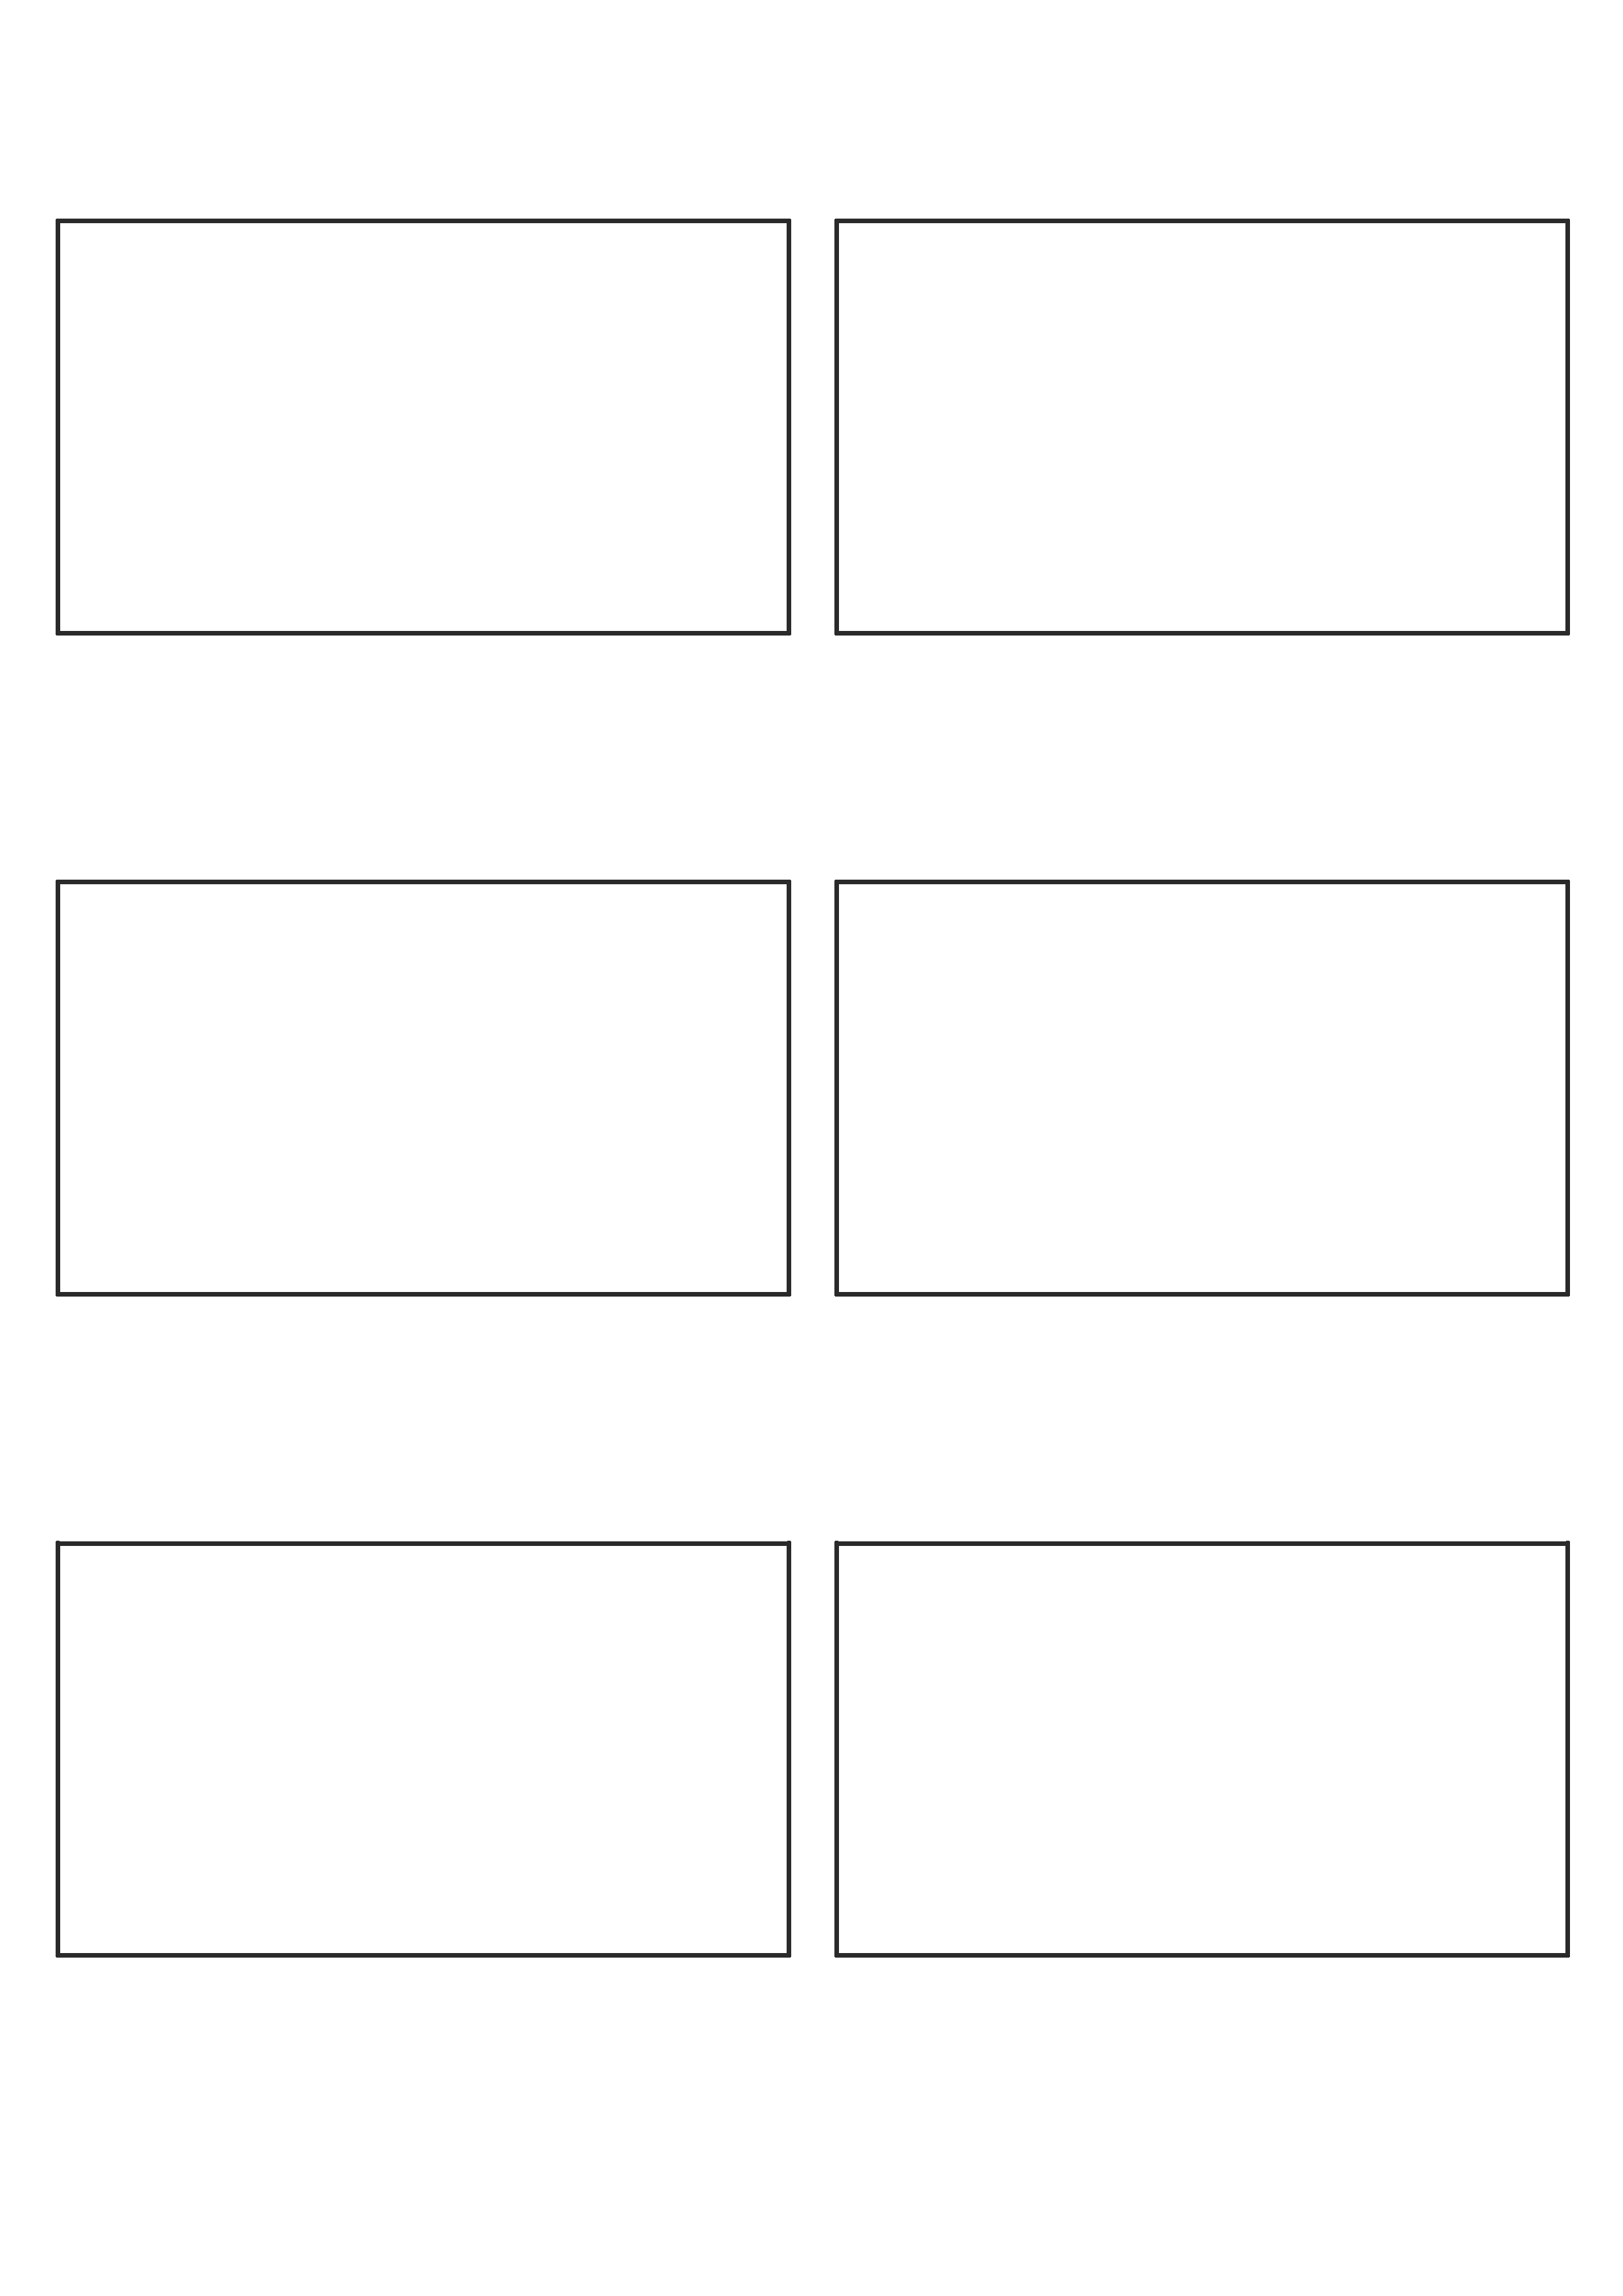 Storyboard Template 16 9 Print By Gabrielbishop On